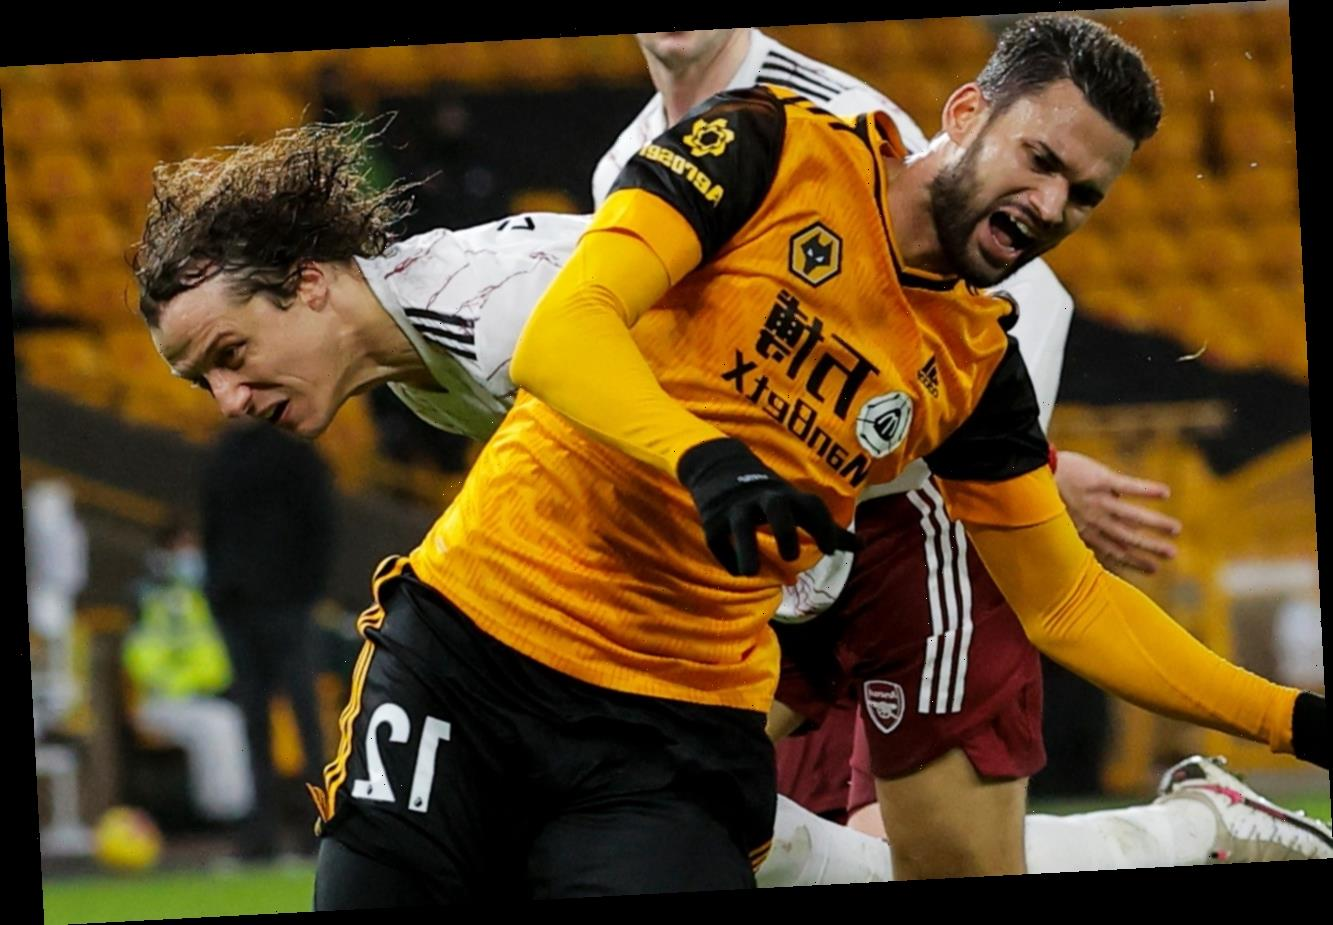 REVEALED: David Luiz tackle at Wolves WAS a red card under new rule despite Arsenal plotting appeal